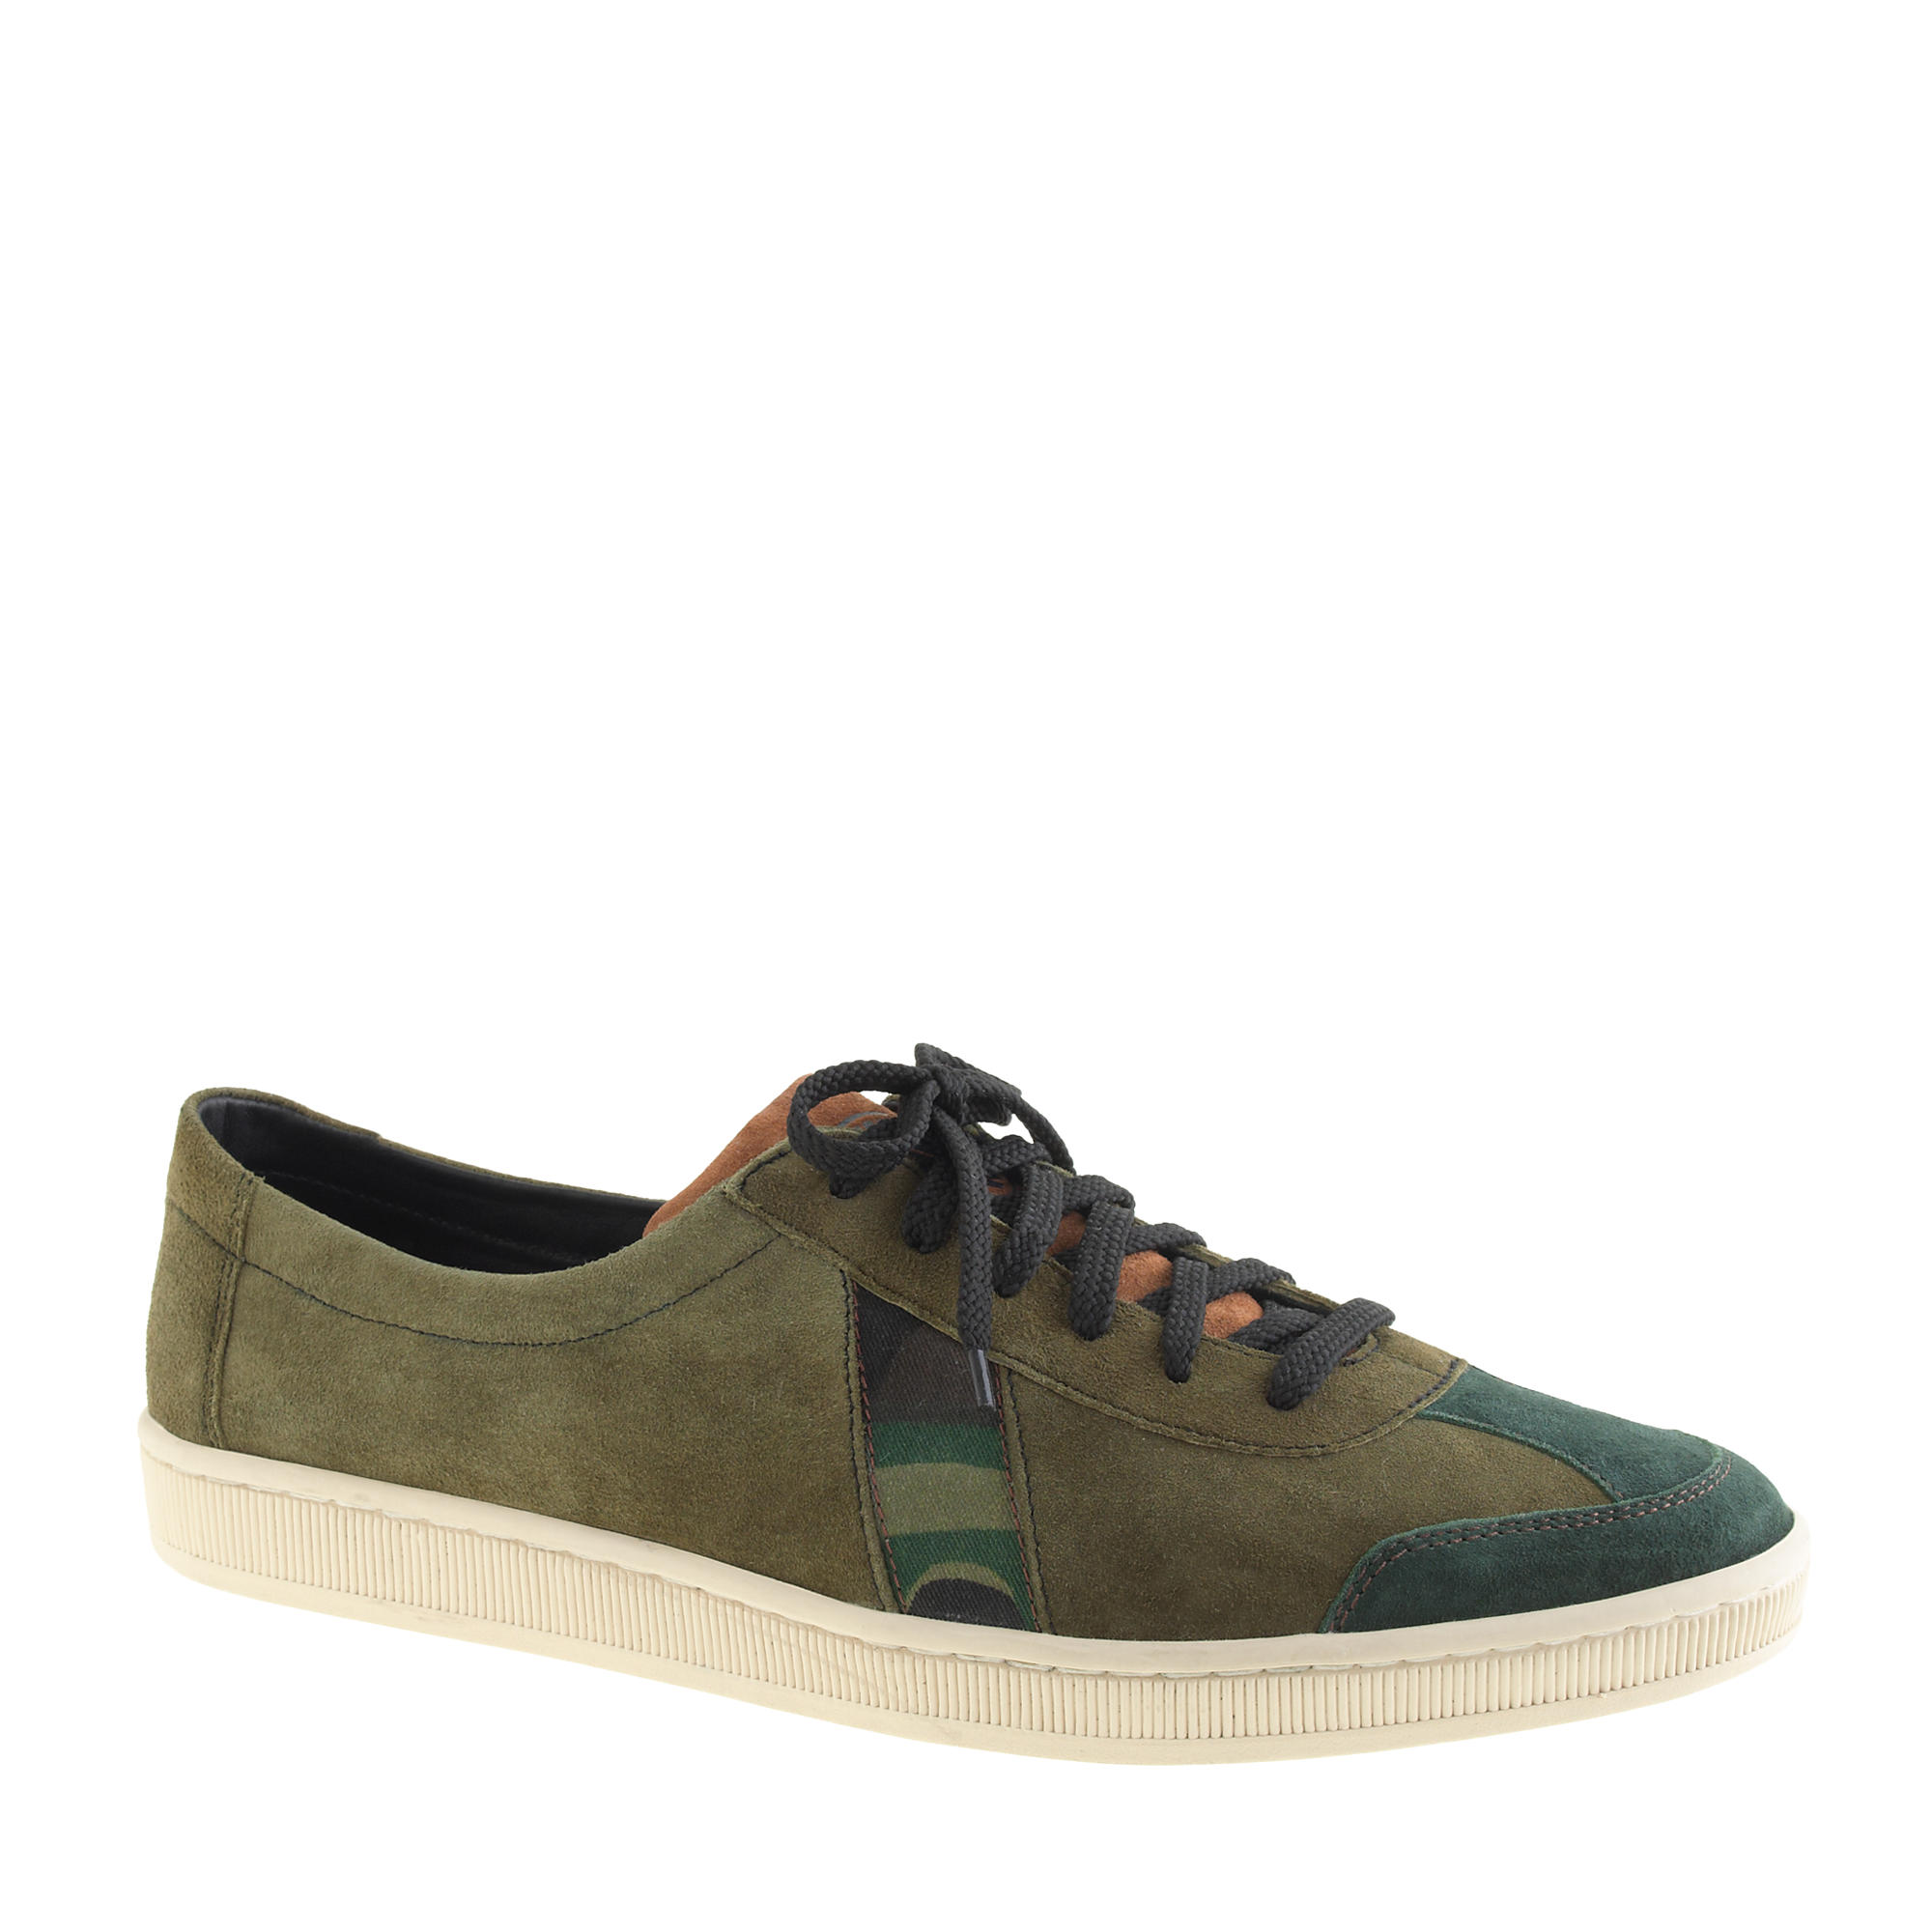 s sawa for j crew dr bess sneakers in camo suede